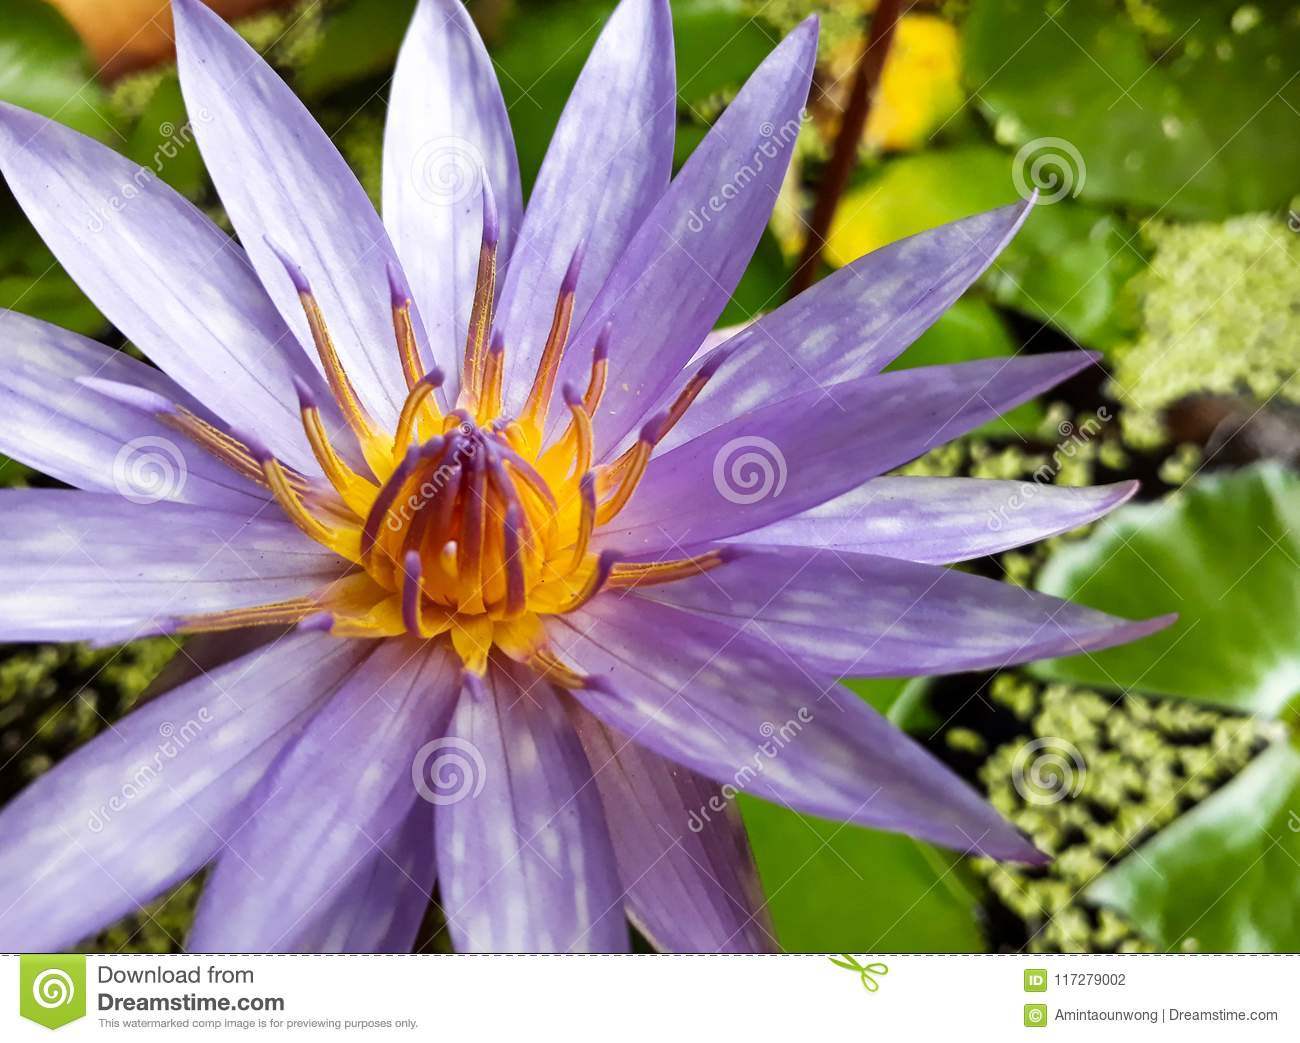 Purple Lotus Flower Or Water Lily With Green Leaves On The Water